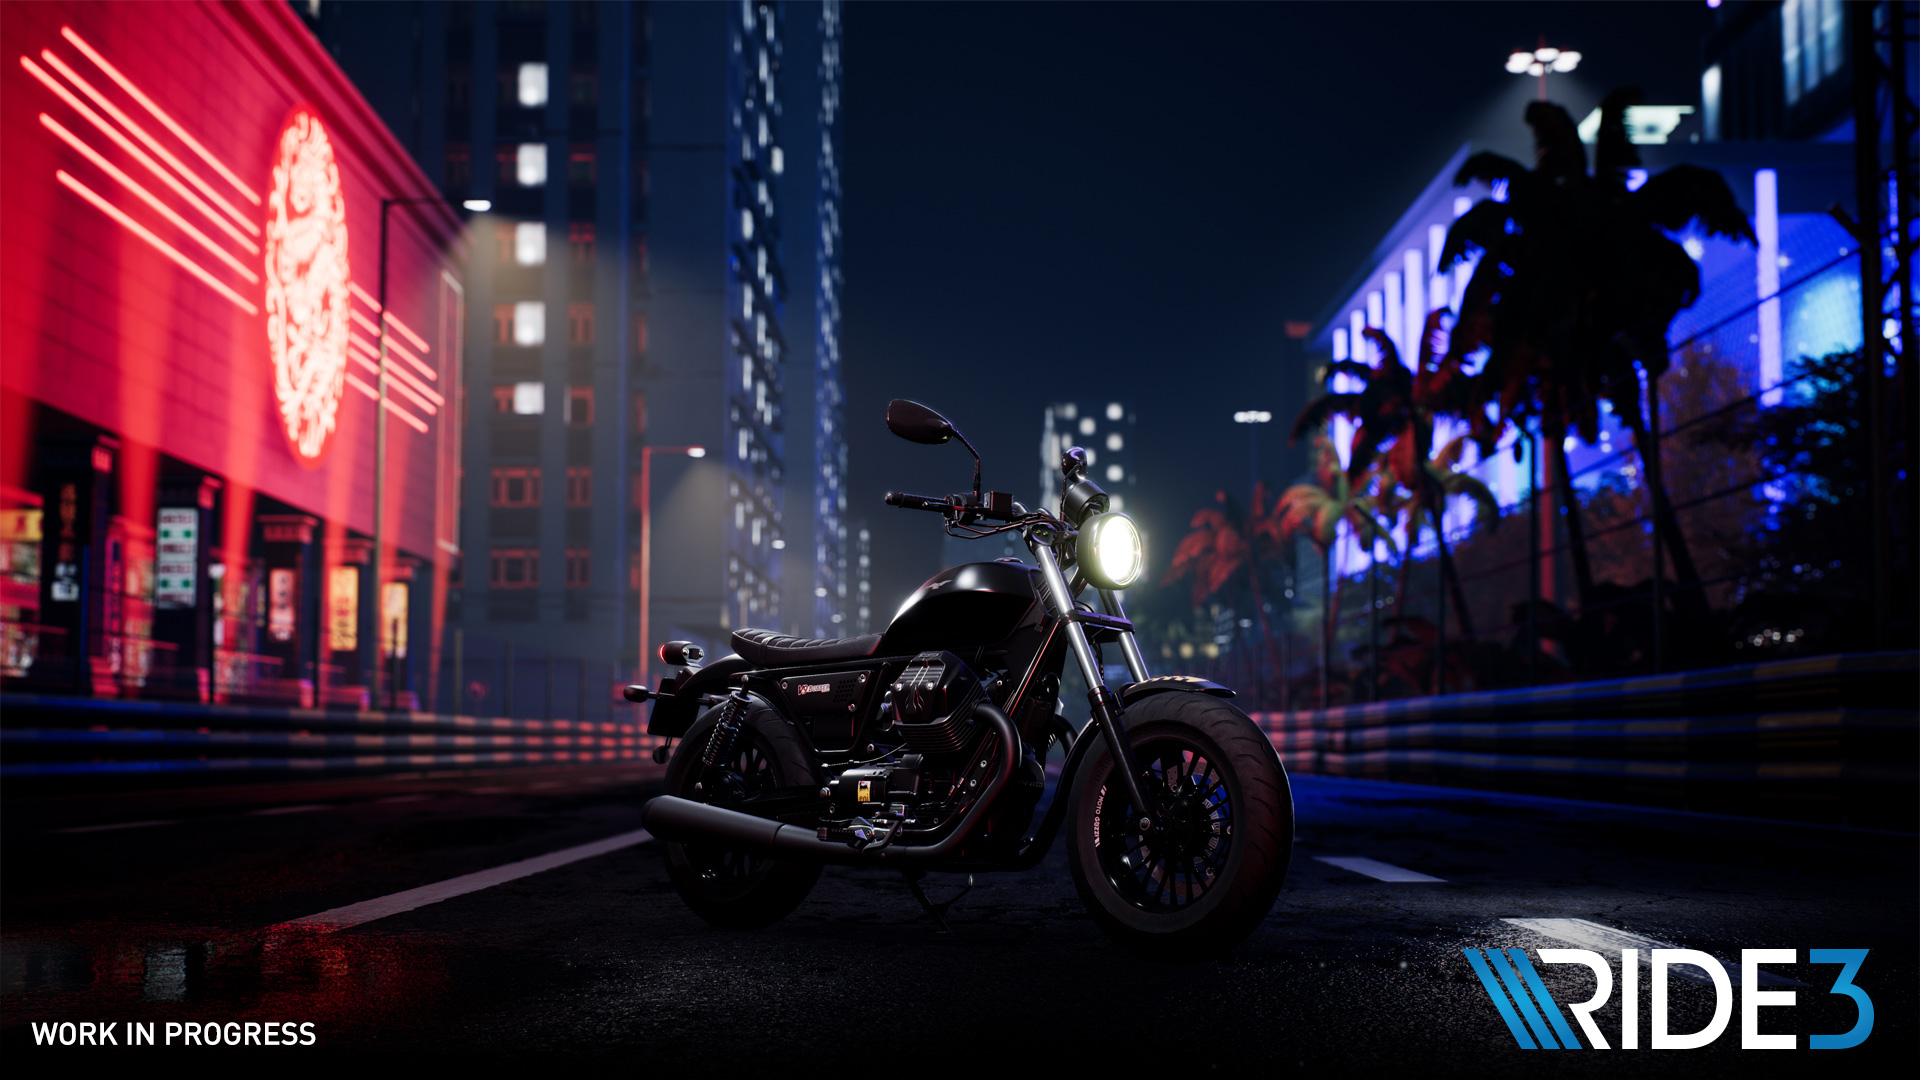 Ride 3 officially announced; scheduled for November 2018 launch